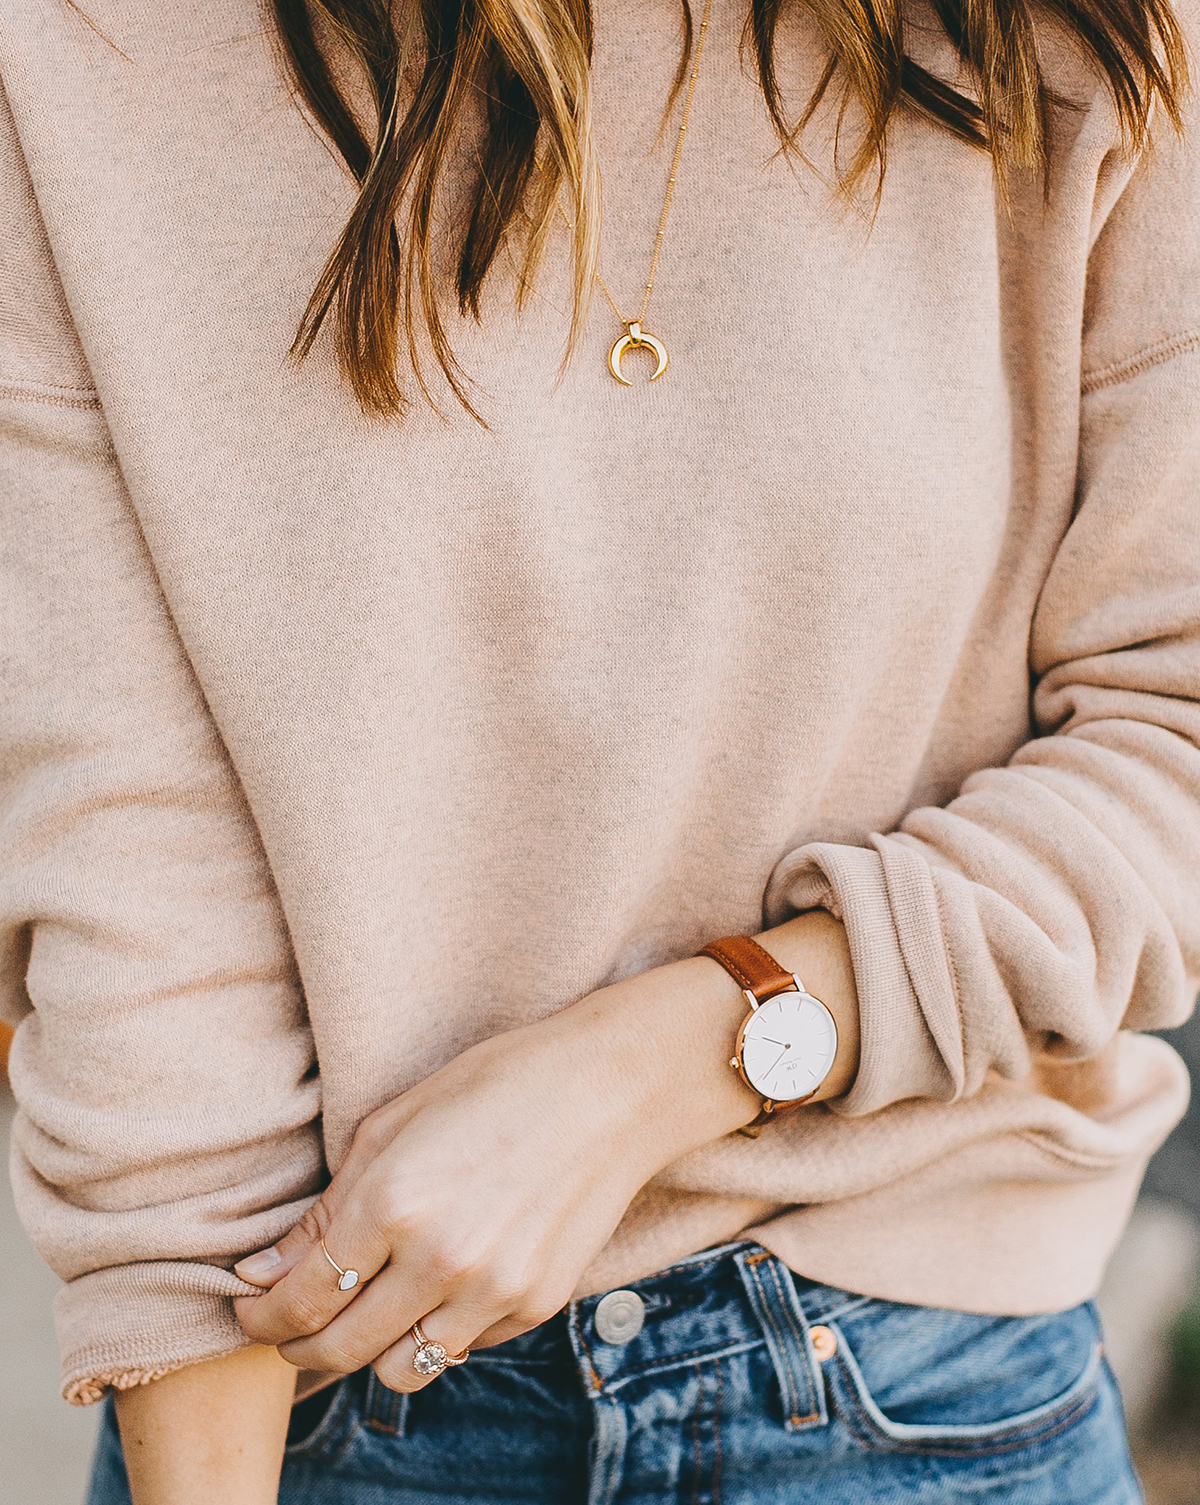 livvyland-blog-olivia-watson-austin-texas-fashion-blogger-madewell-peach-sweatshirt-medium-transport-tote-levis-501-jeans-12